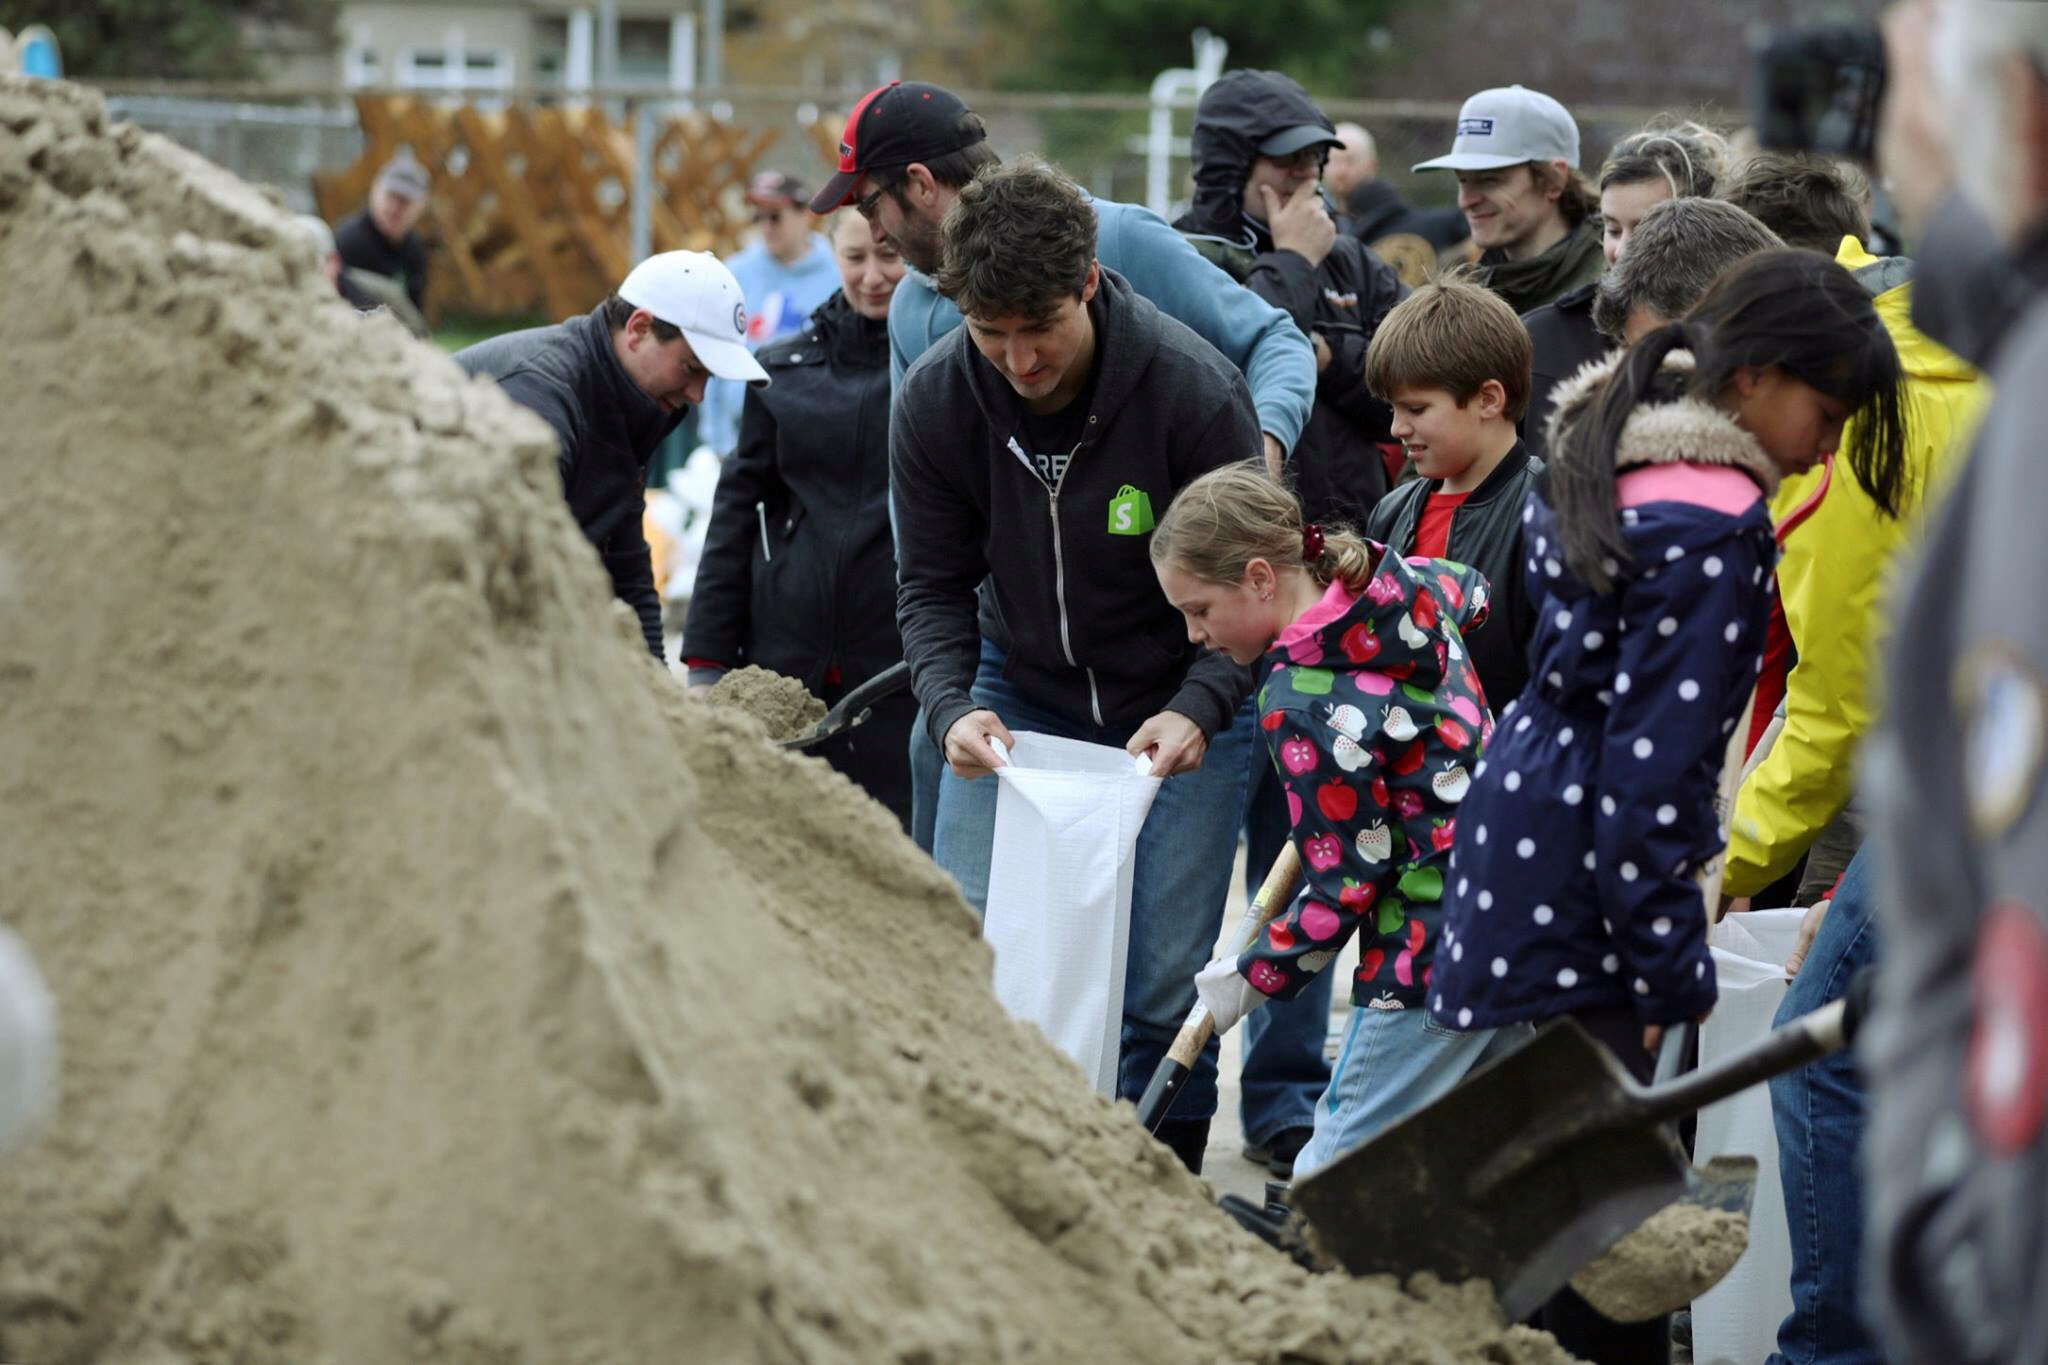 Canada's Prime Minister Justin Trudeau (C) helps fill sandbags after flooding in Terrasse-Vaudreuil, Quebec